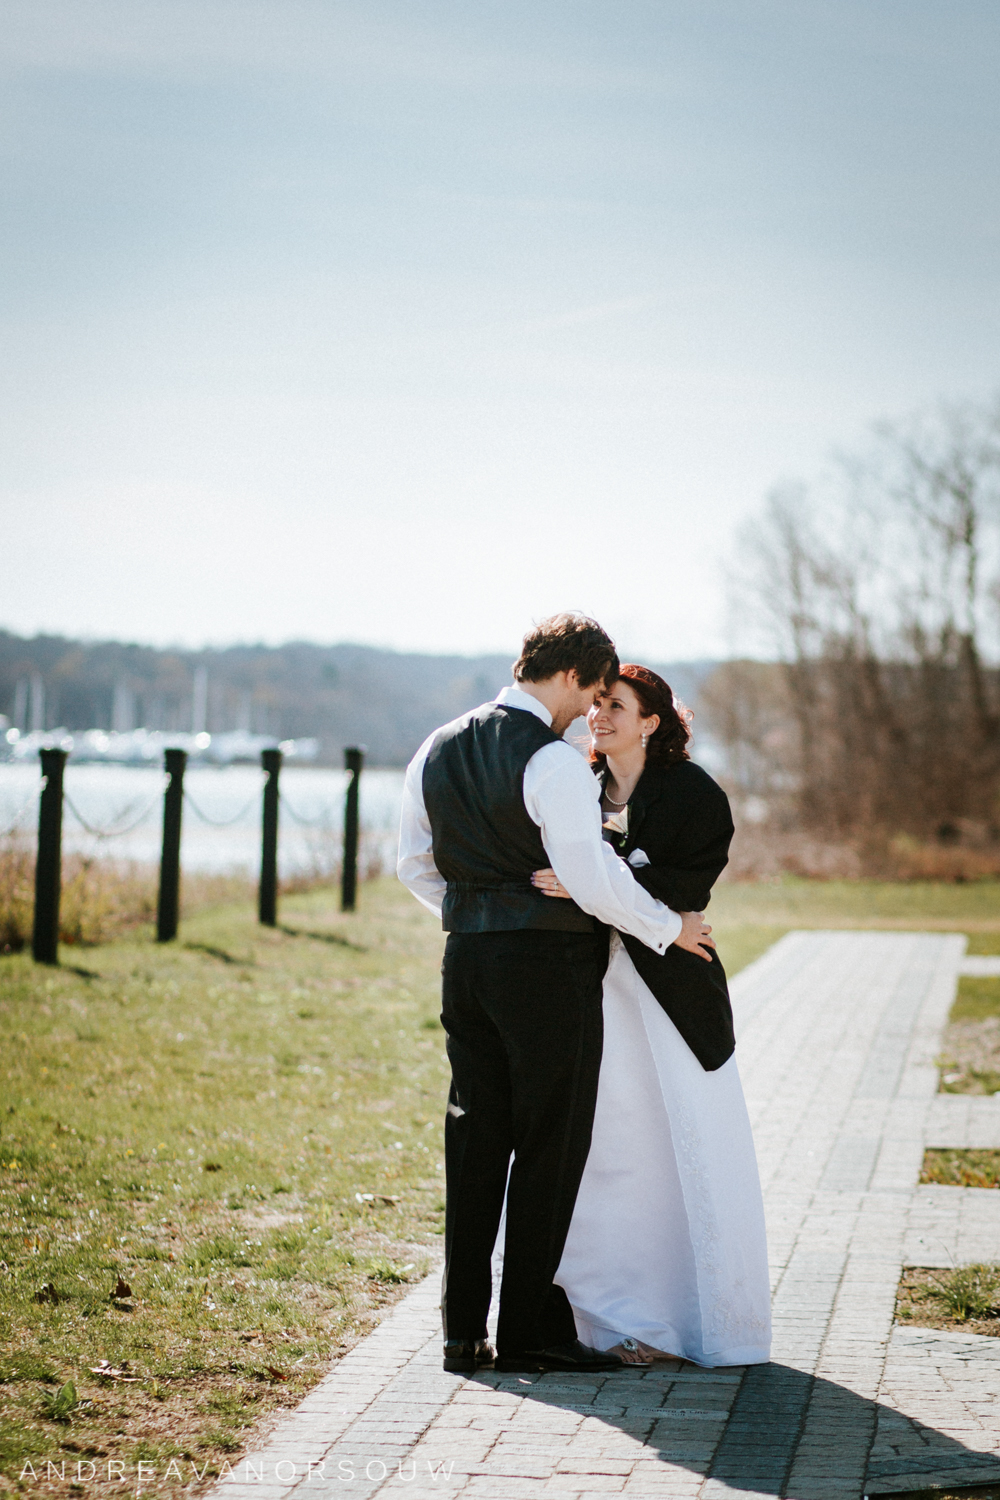 bride_groom_couple_wedding_new_england_connecticut_couple_poses_rhode_island_wedding_photographer_artistic_natural.jpg